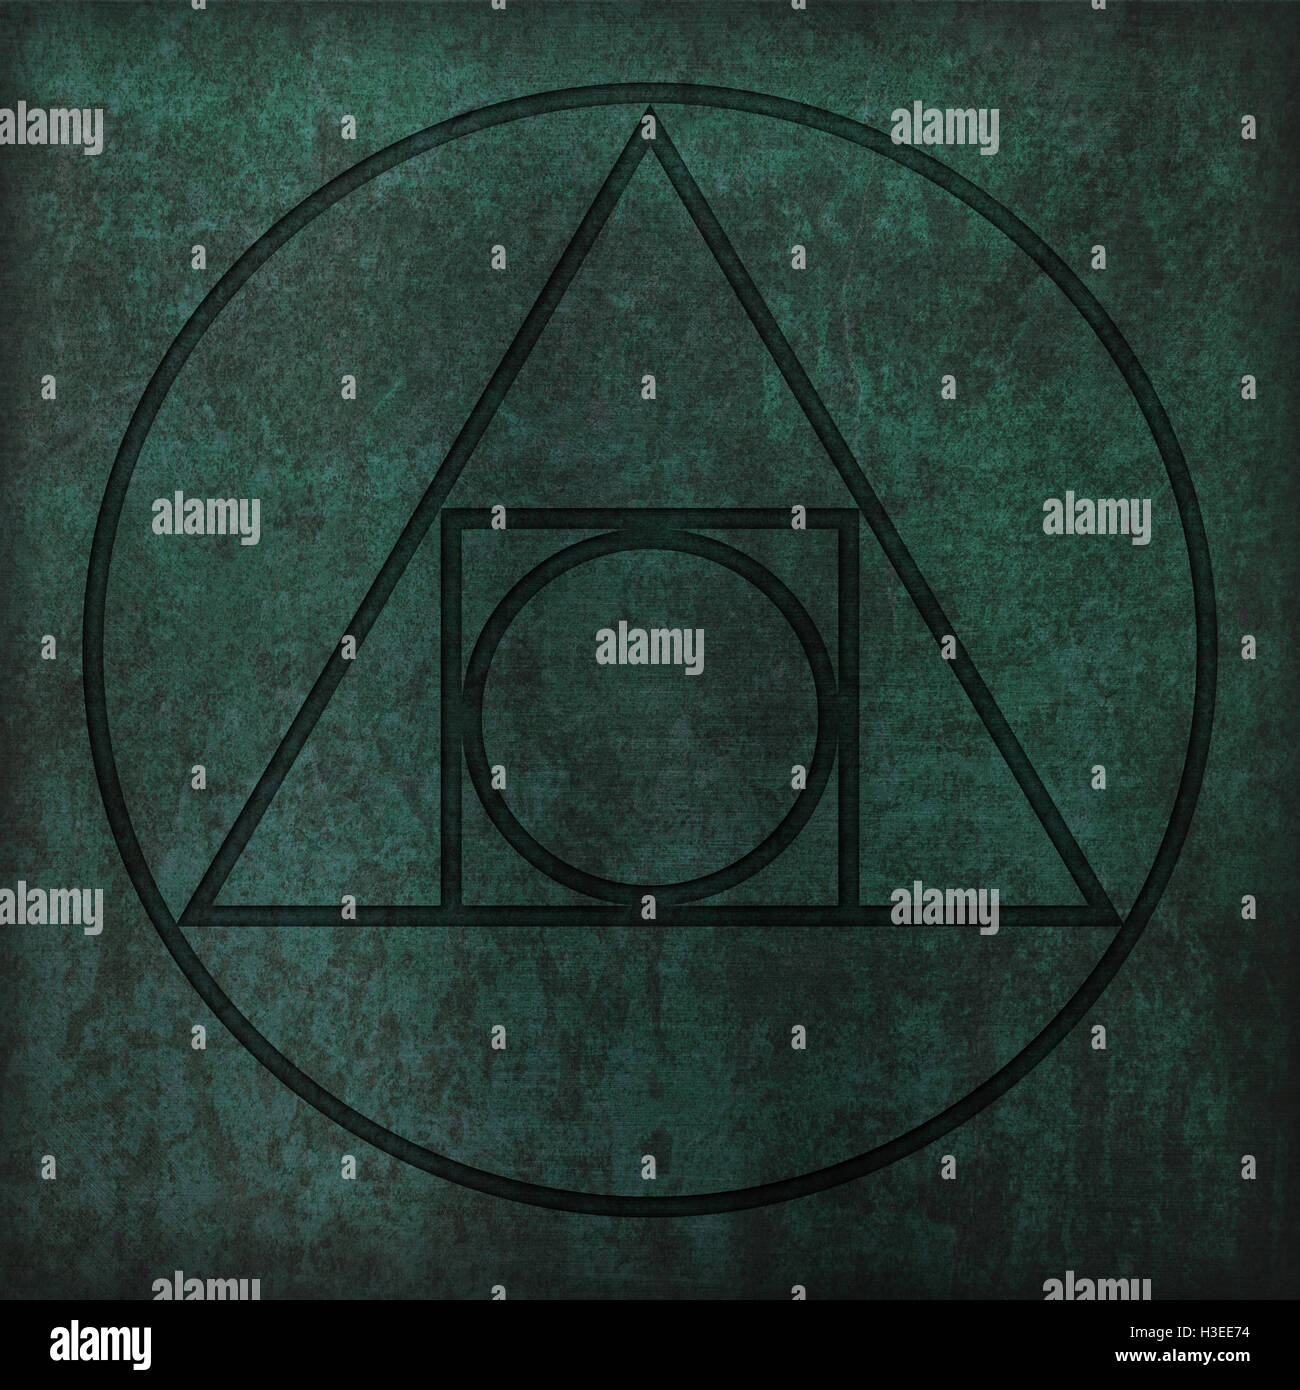 Alchemy symbol squaring the circle copper stock photo 122635048 alchemy symbol squaring the circle copper buycottarizona Image collections